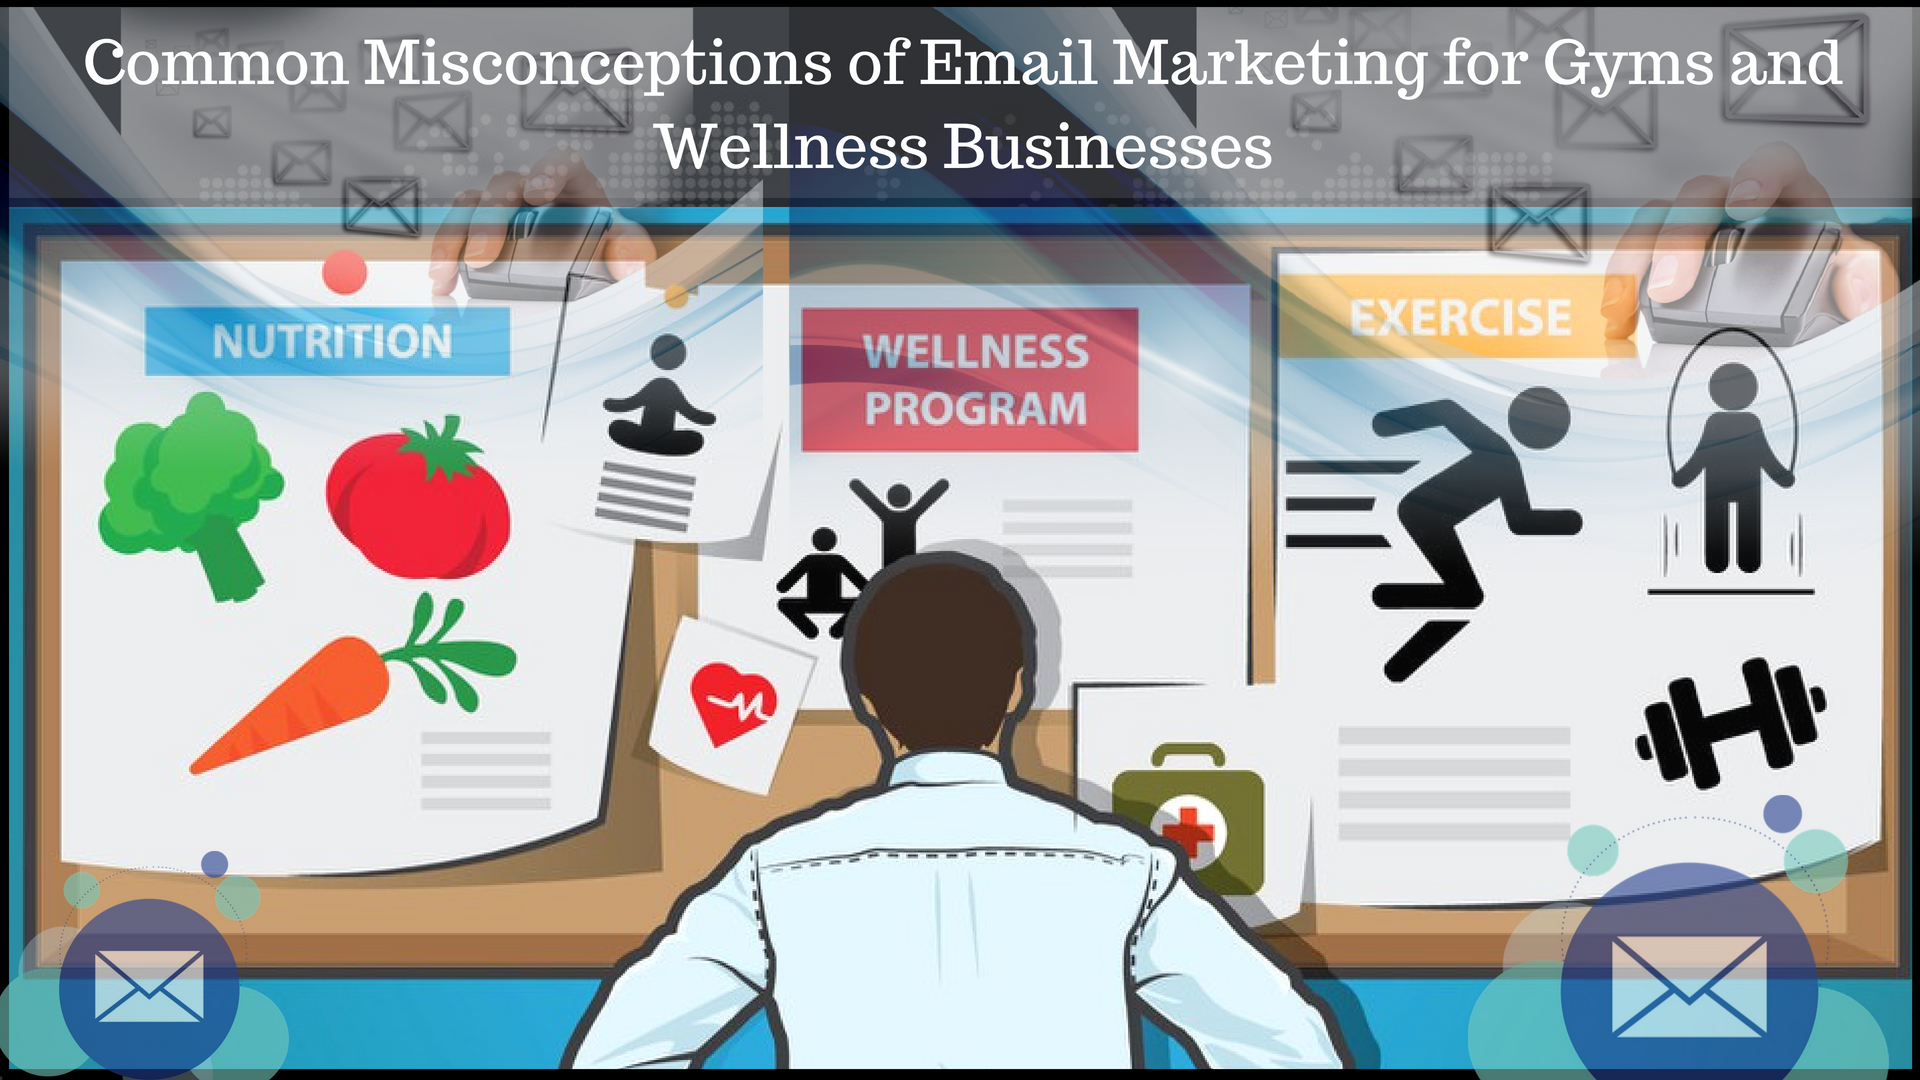 Email Marketing for Gyms and Wellness Businesses Image